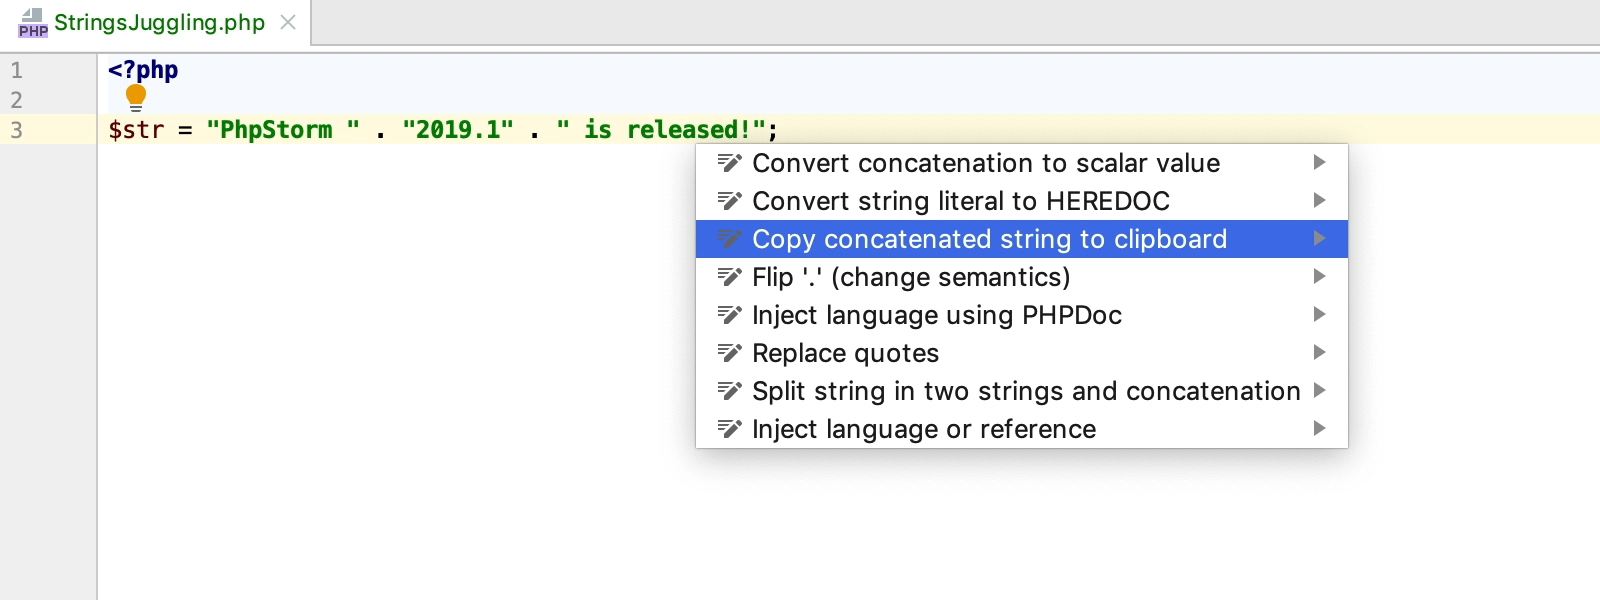 Copy concatenated string